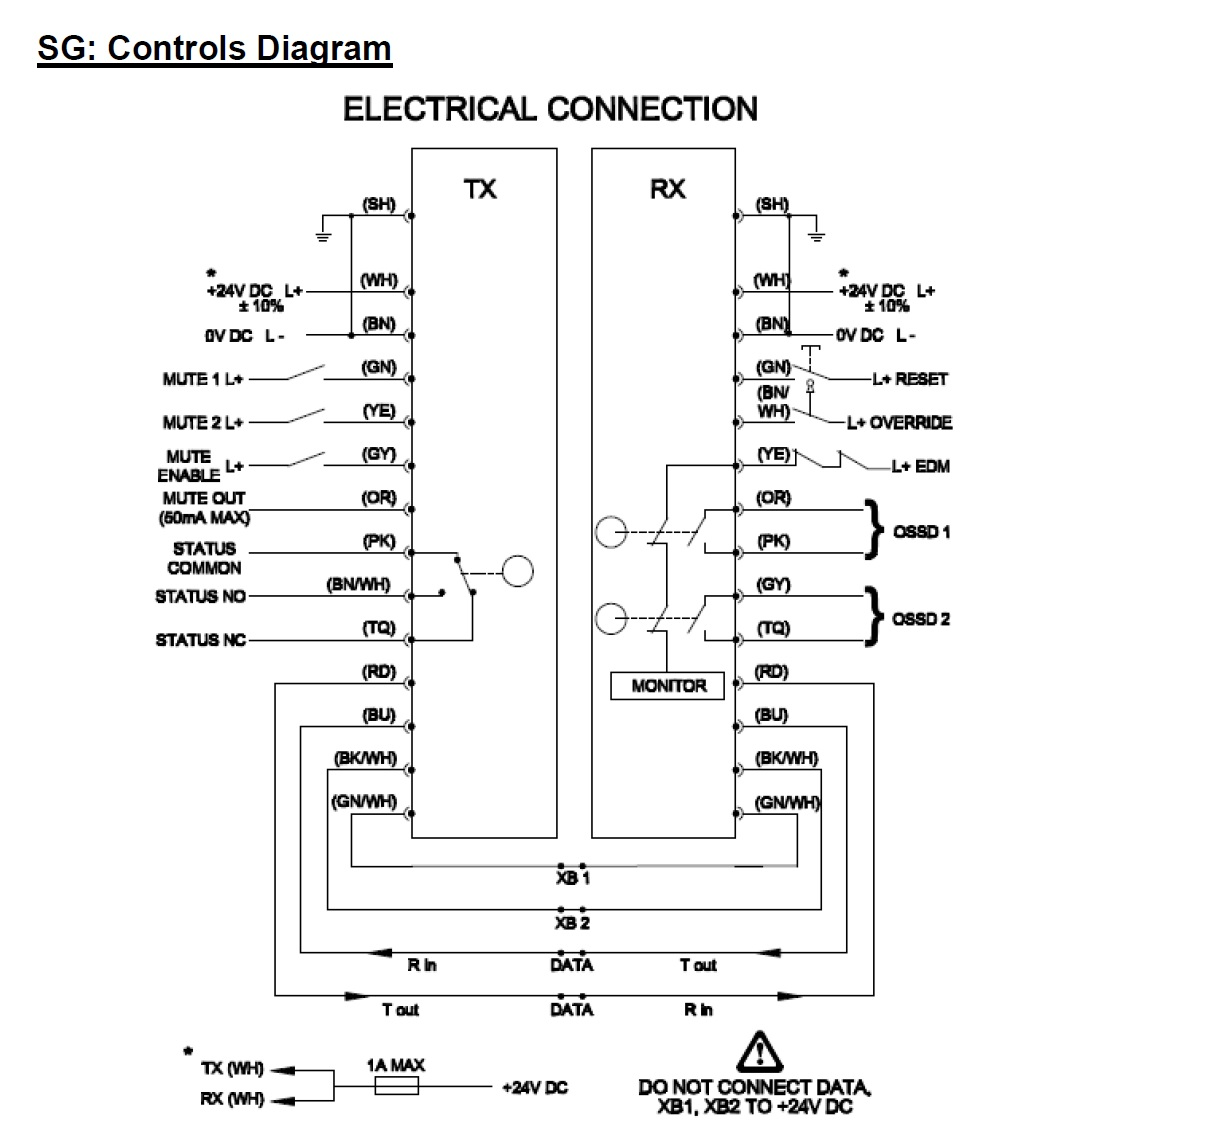 sg_controls?resize=800%2C746 light curtain wiring diagram starter wiring diagram, relay wiring safety mat wiring diagram at webbmarketing.co